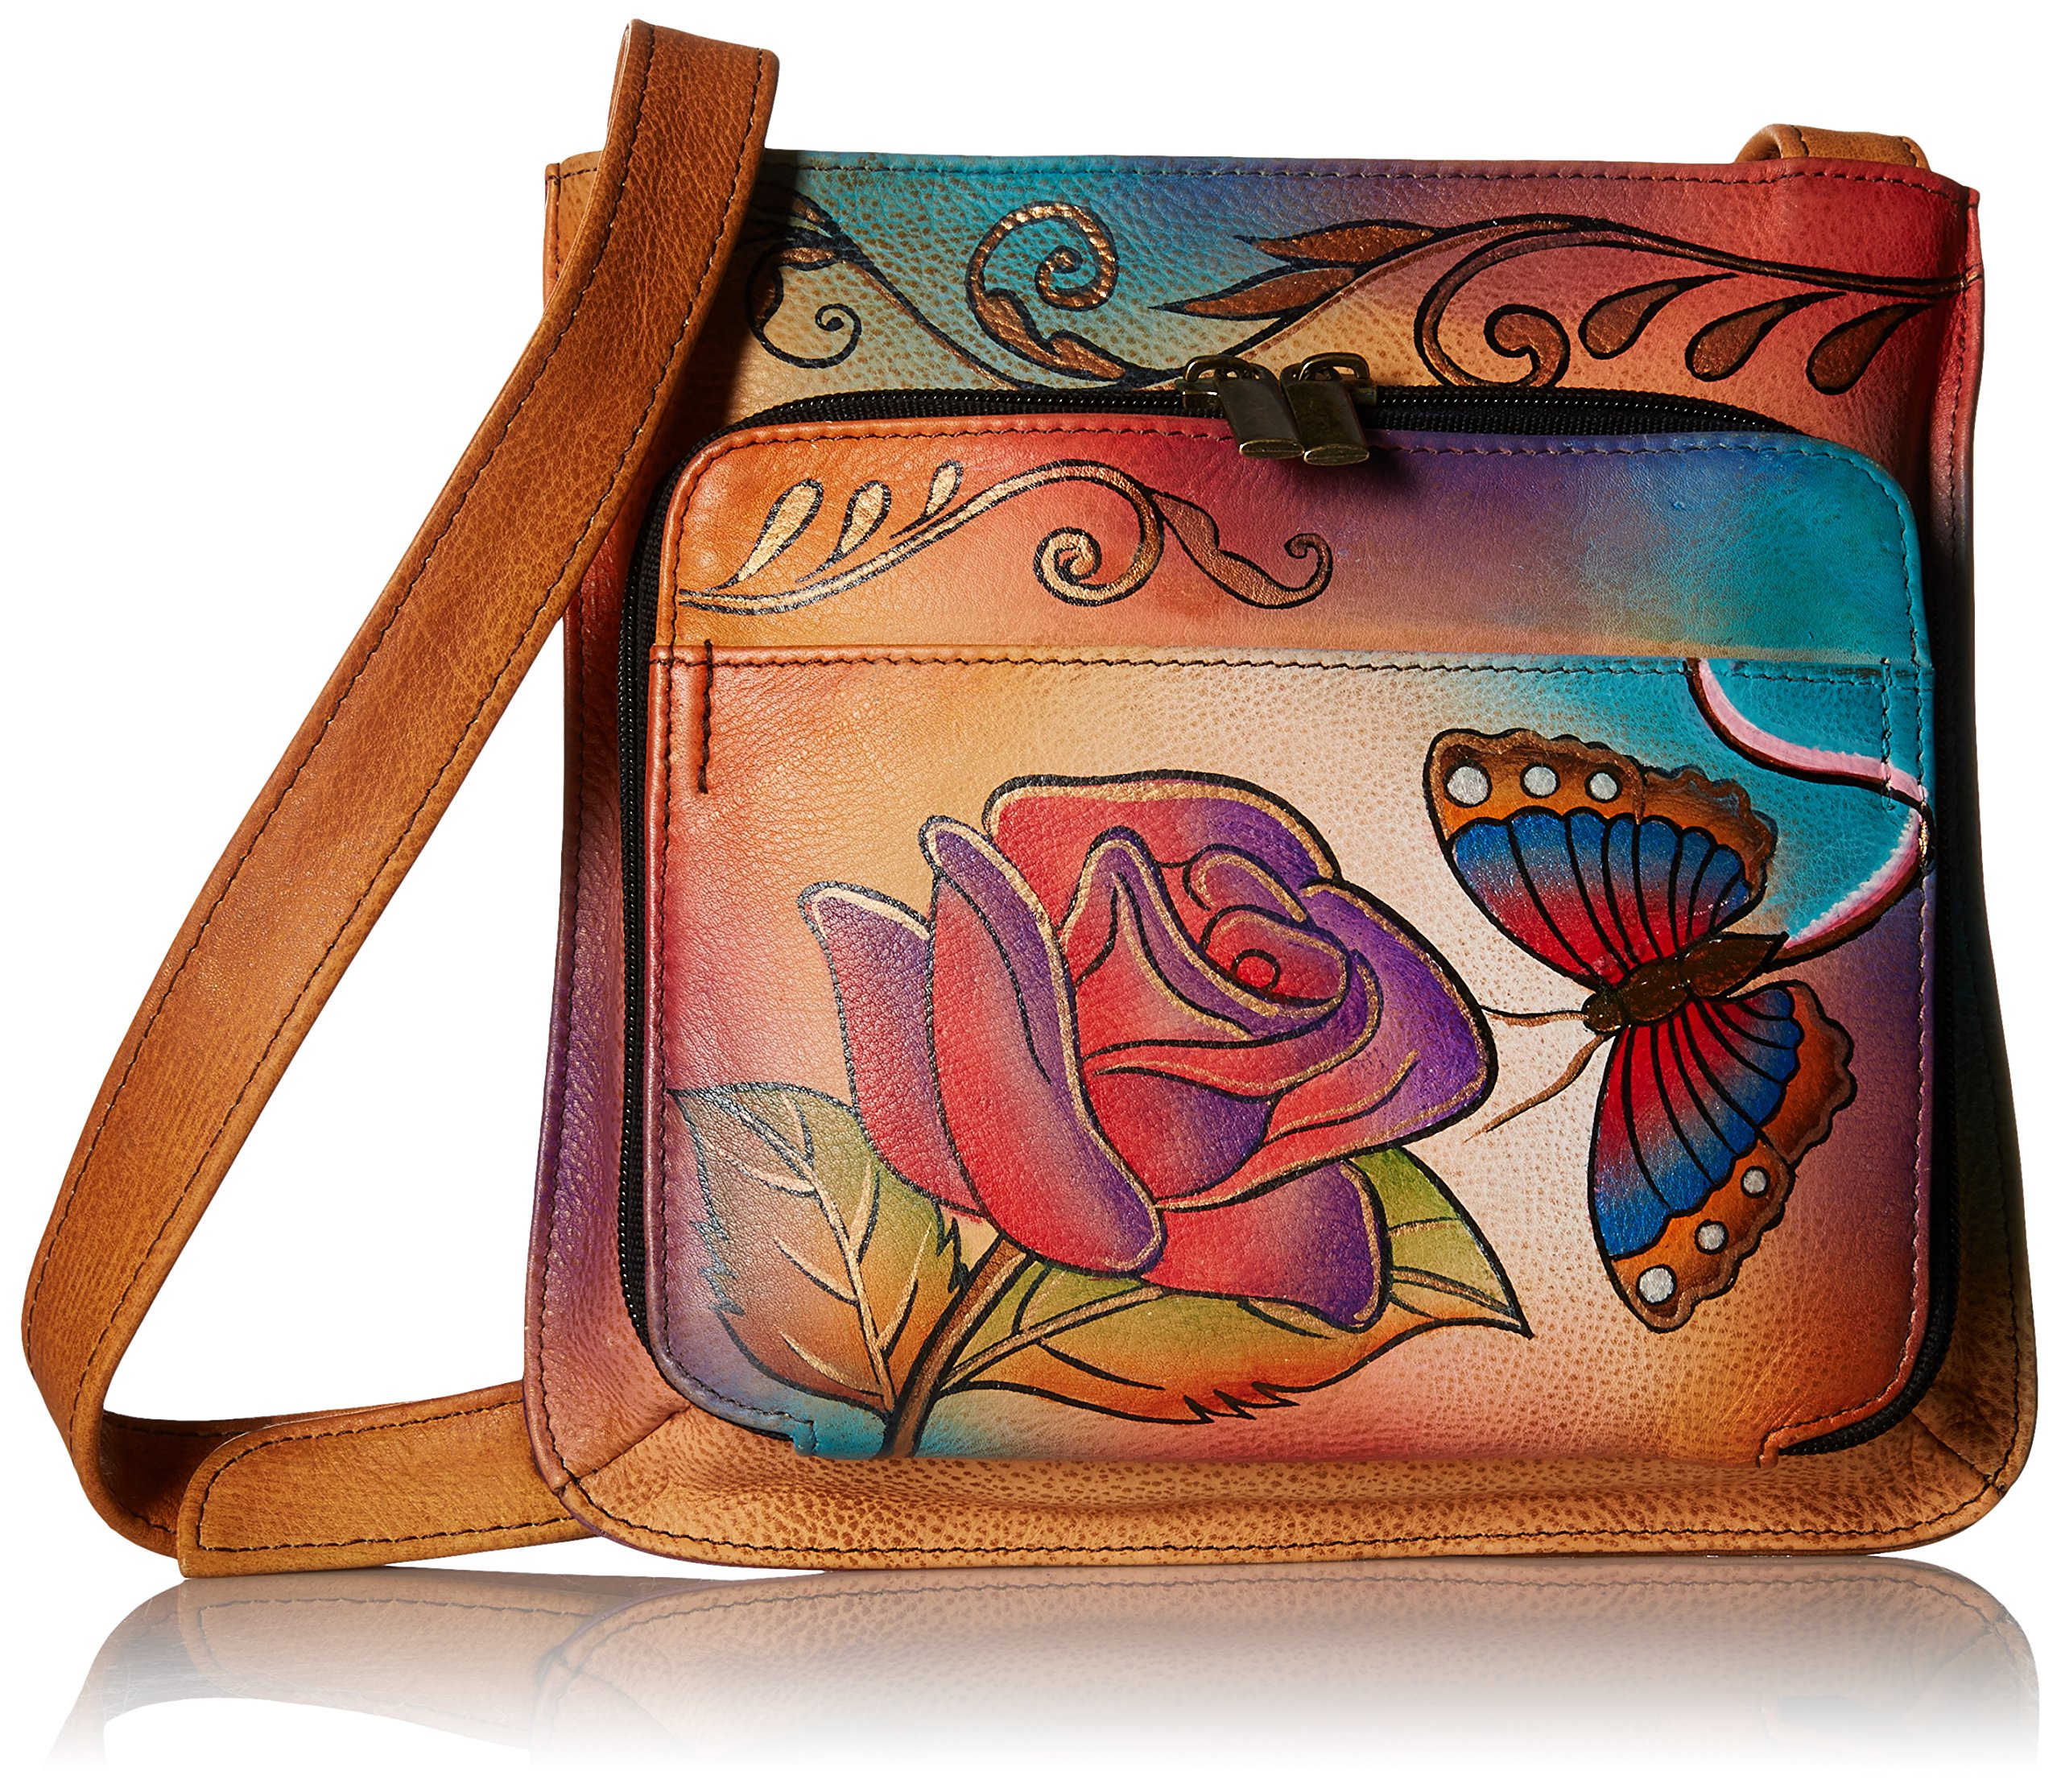 Anuschka Handpainted Leather 7011-RB Slim Shoulder Organizer, Rose Butterfly, One Size